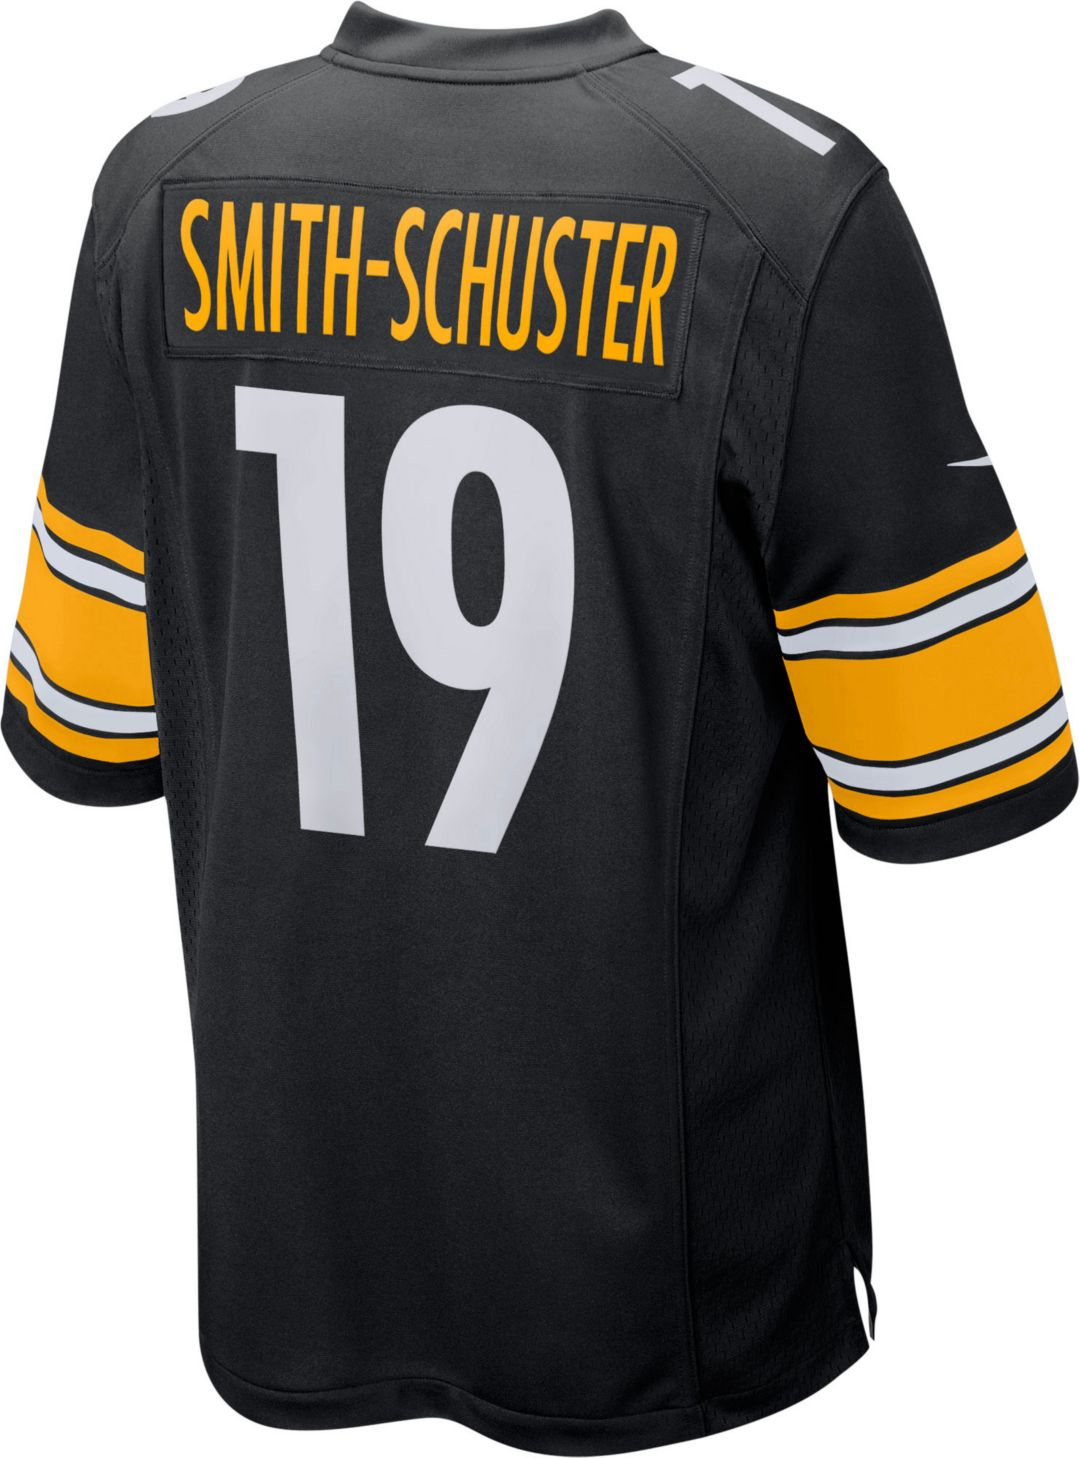 new product 0d32b 26d71 Nike Youth Home Game Jersey Pittsburgh Steelers JuJu Smith-Schuster #19